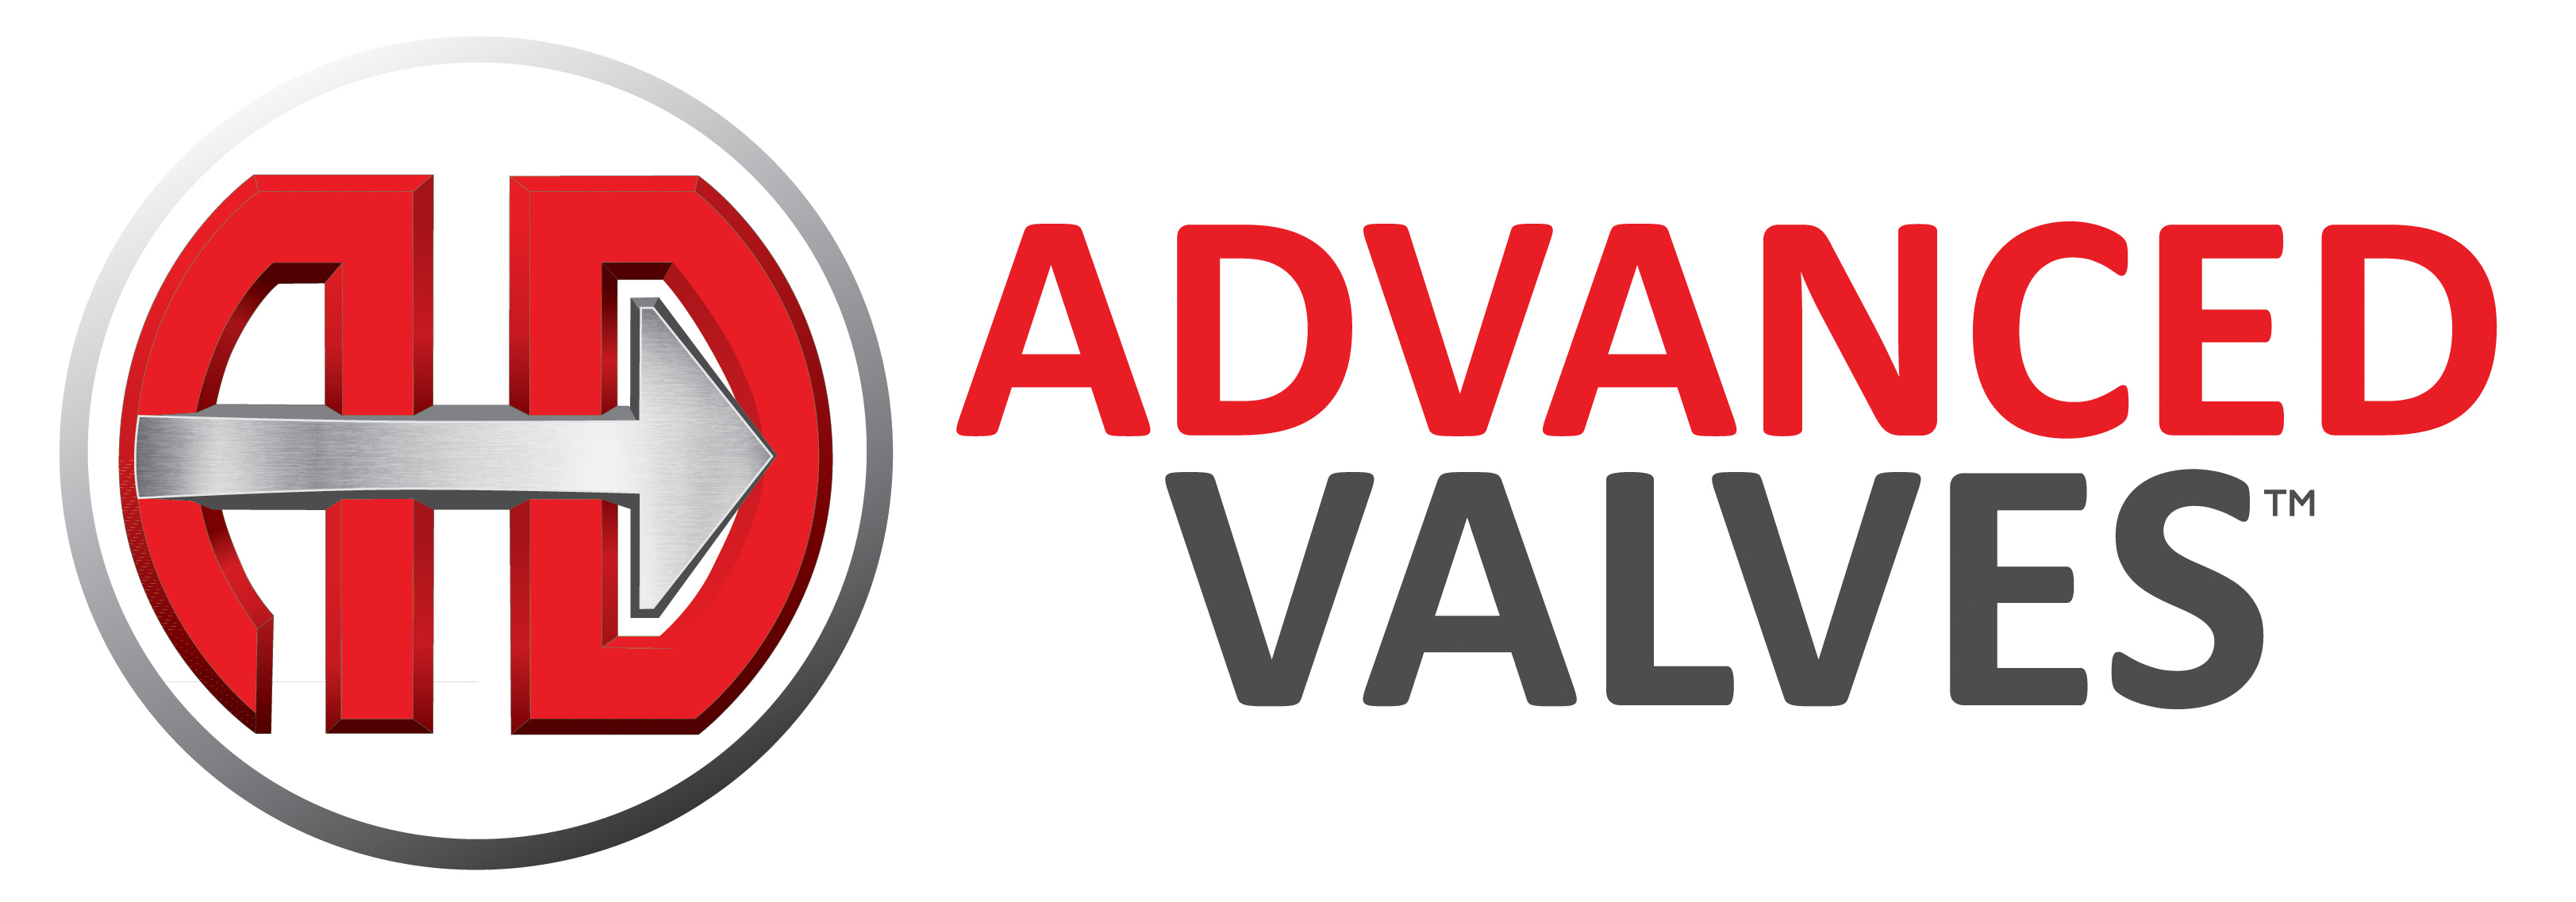 Advanced Valves